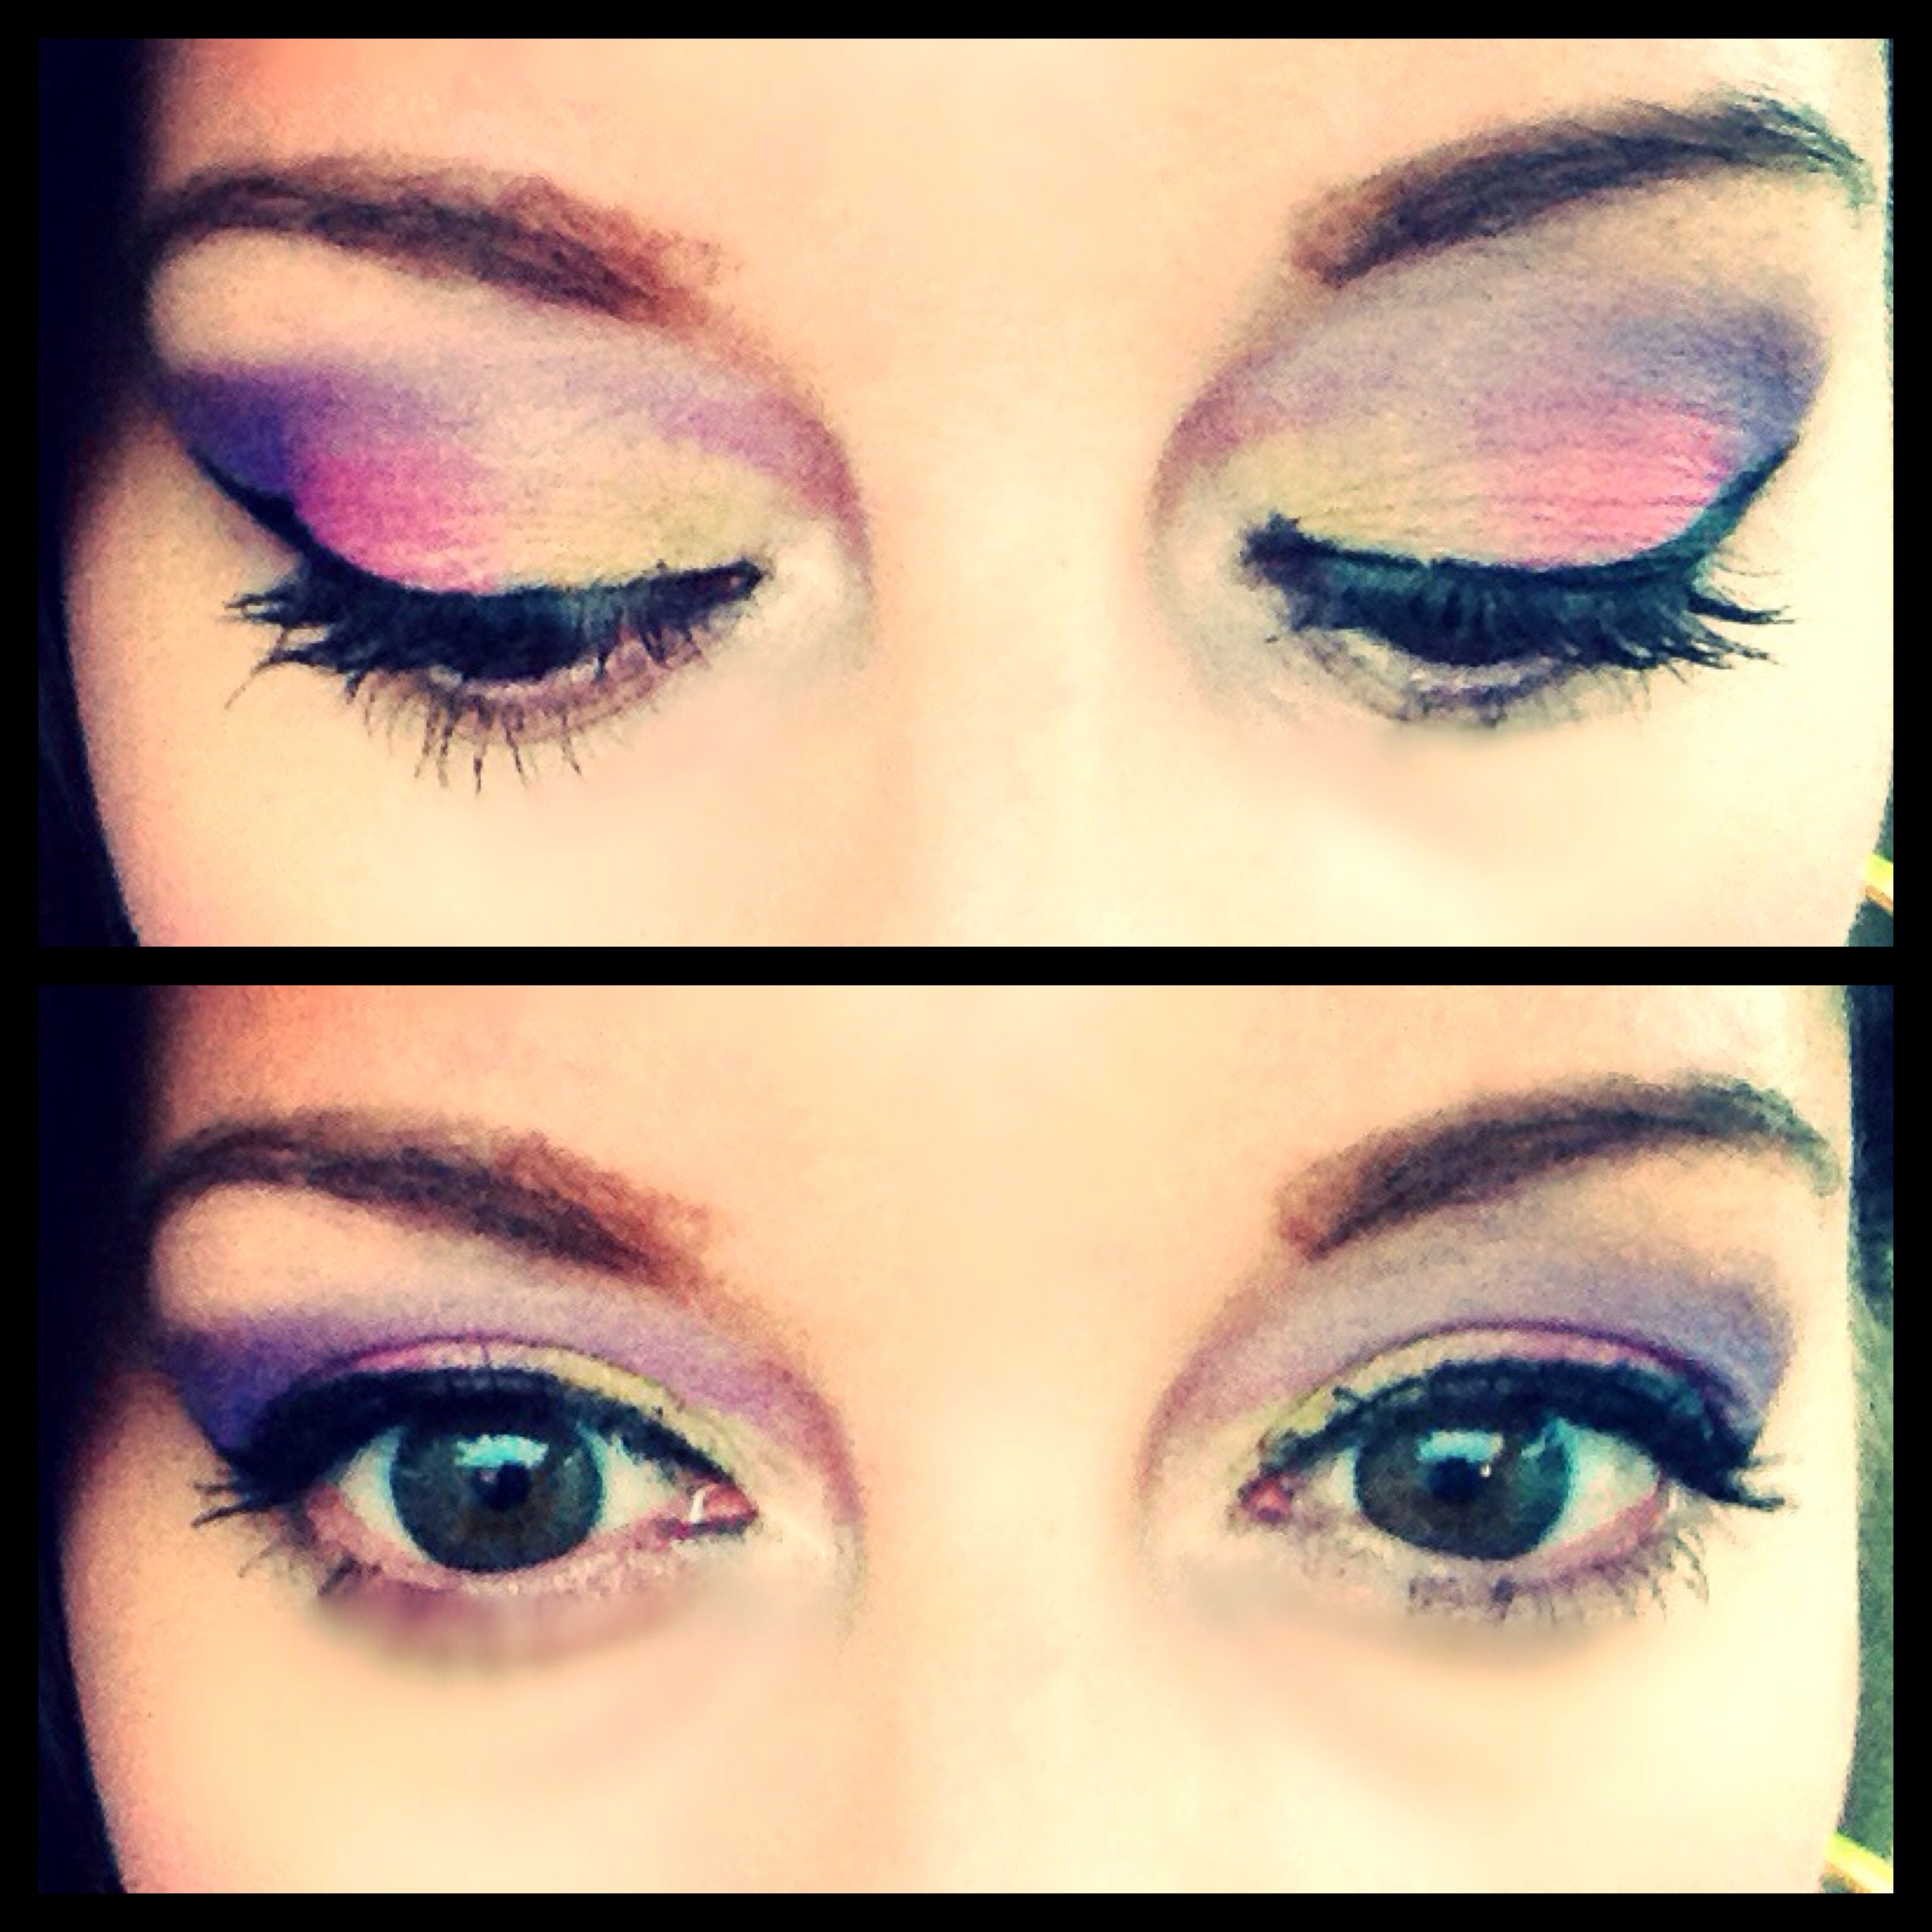 Bright eye makeup. Products used were sigma cream couture palette, bobby brown paint pot, and Stila stay all day liquid liner pen.